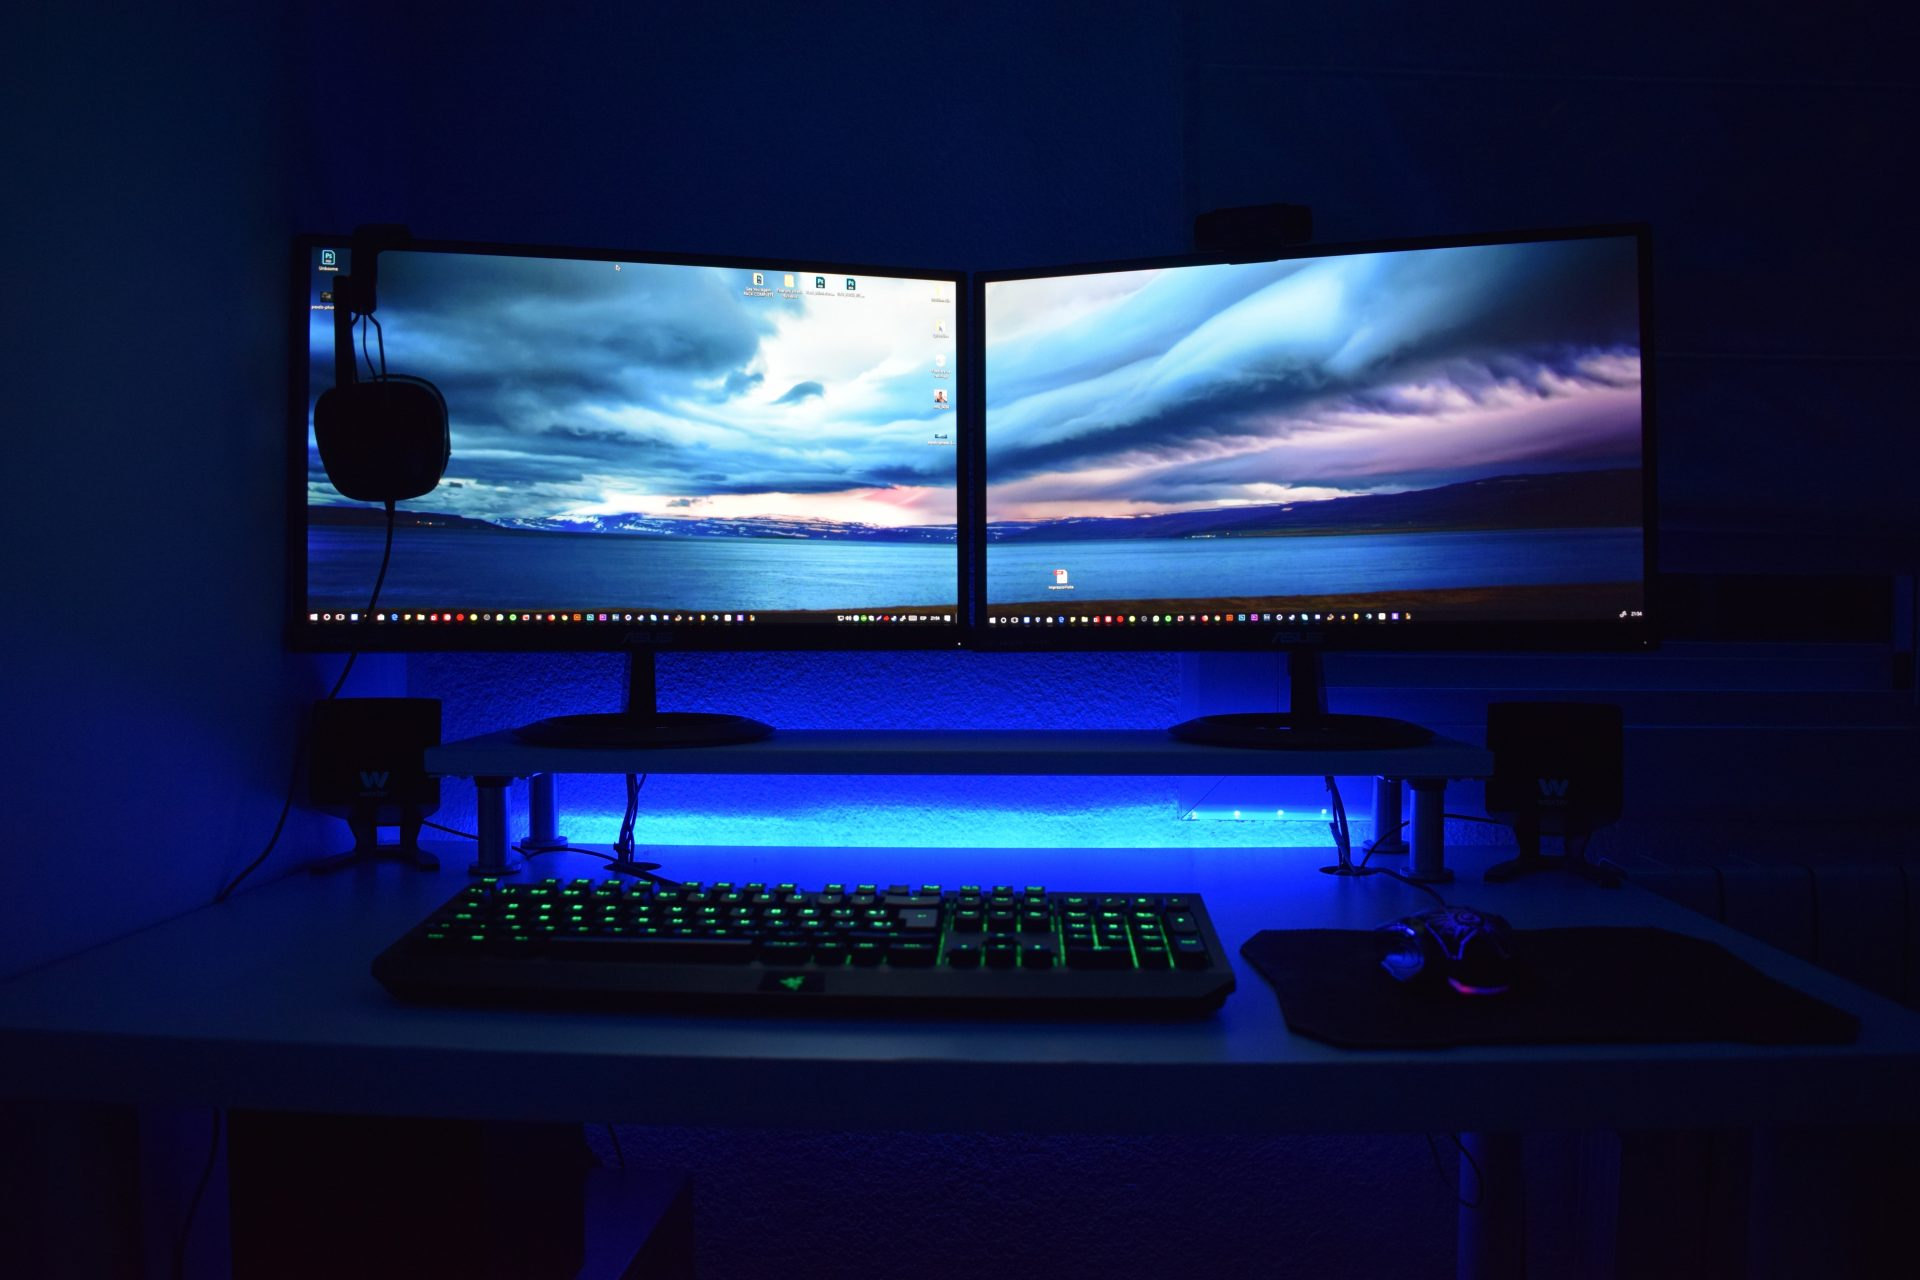 10 Best Monitor with 2 HDMI Ports - 2021